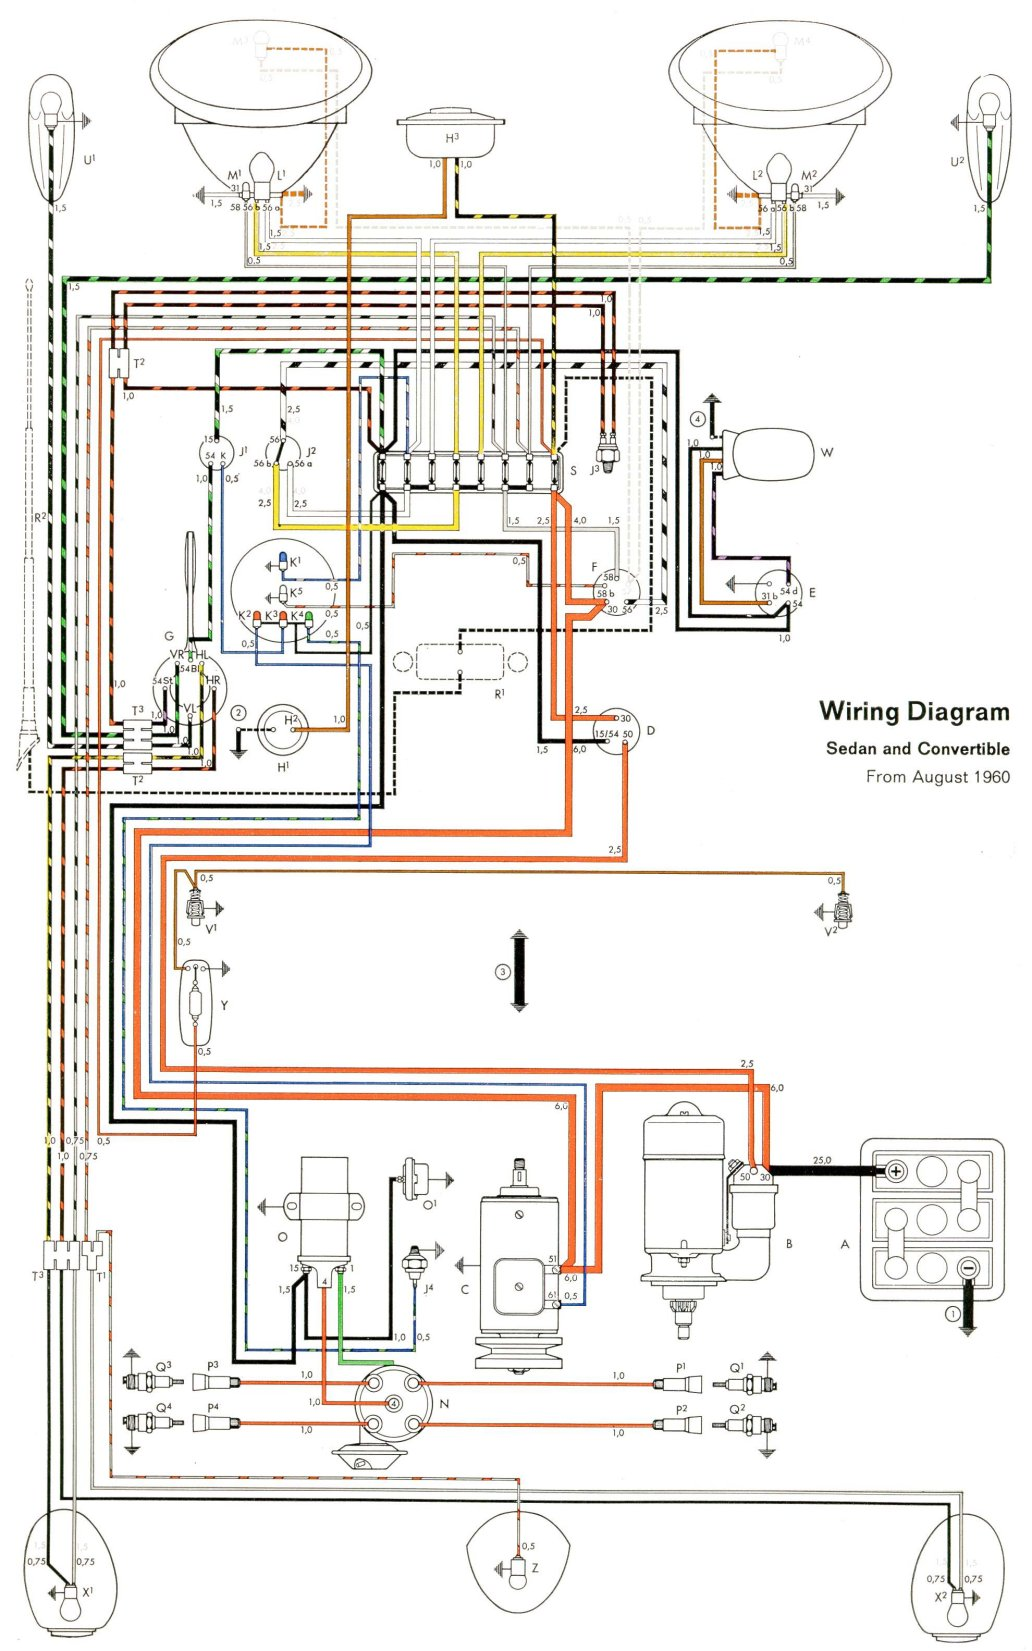 bug_61 thesamba com type 1 wiring diagrams vw beetle wiring diagram at mr168.co